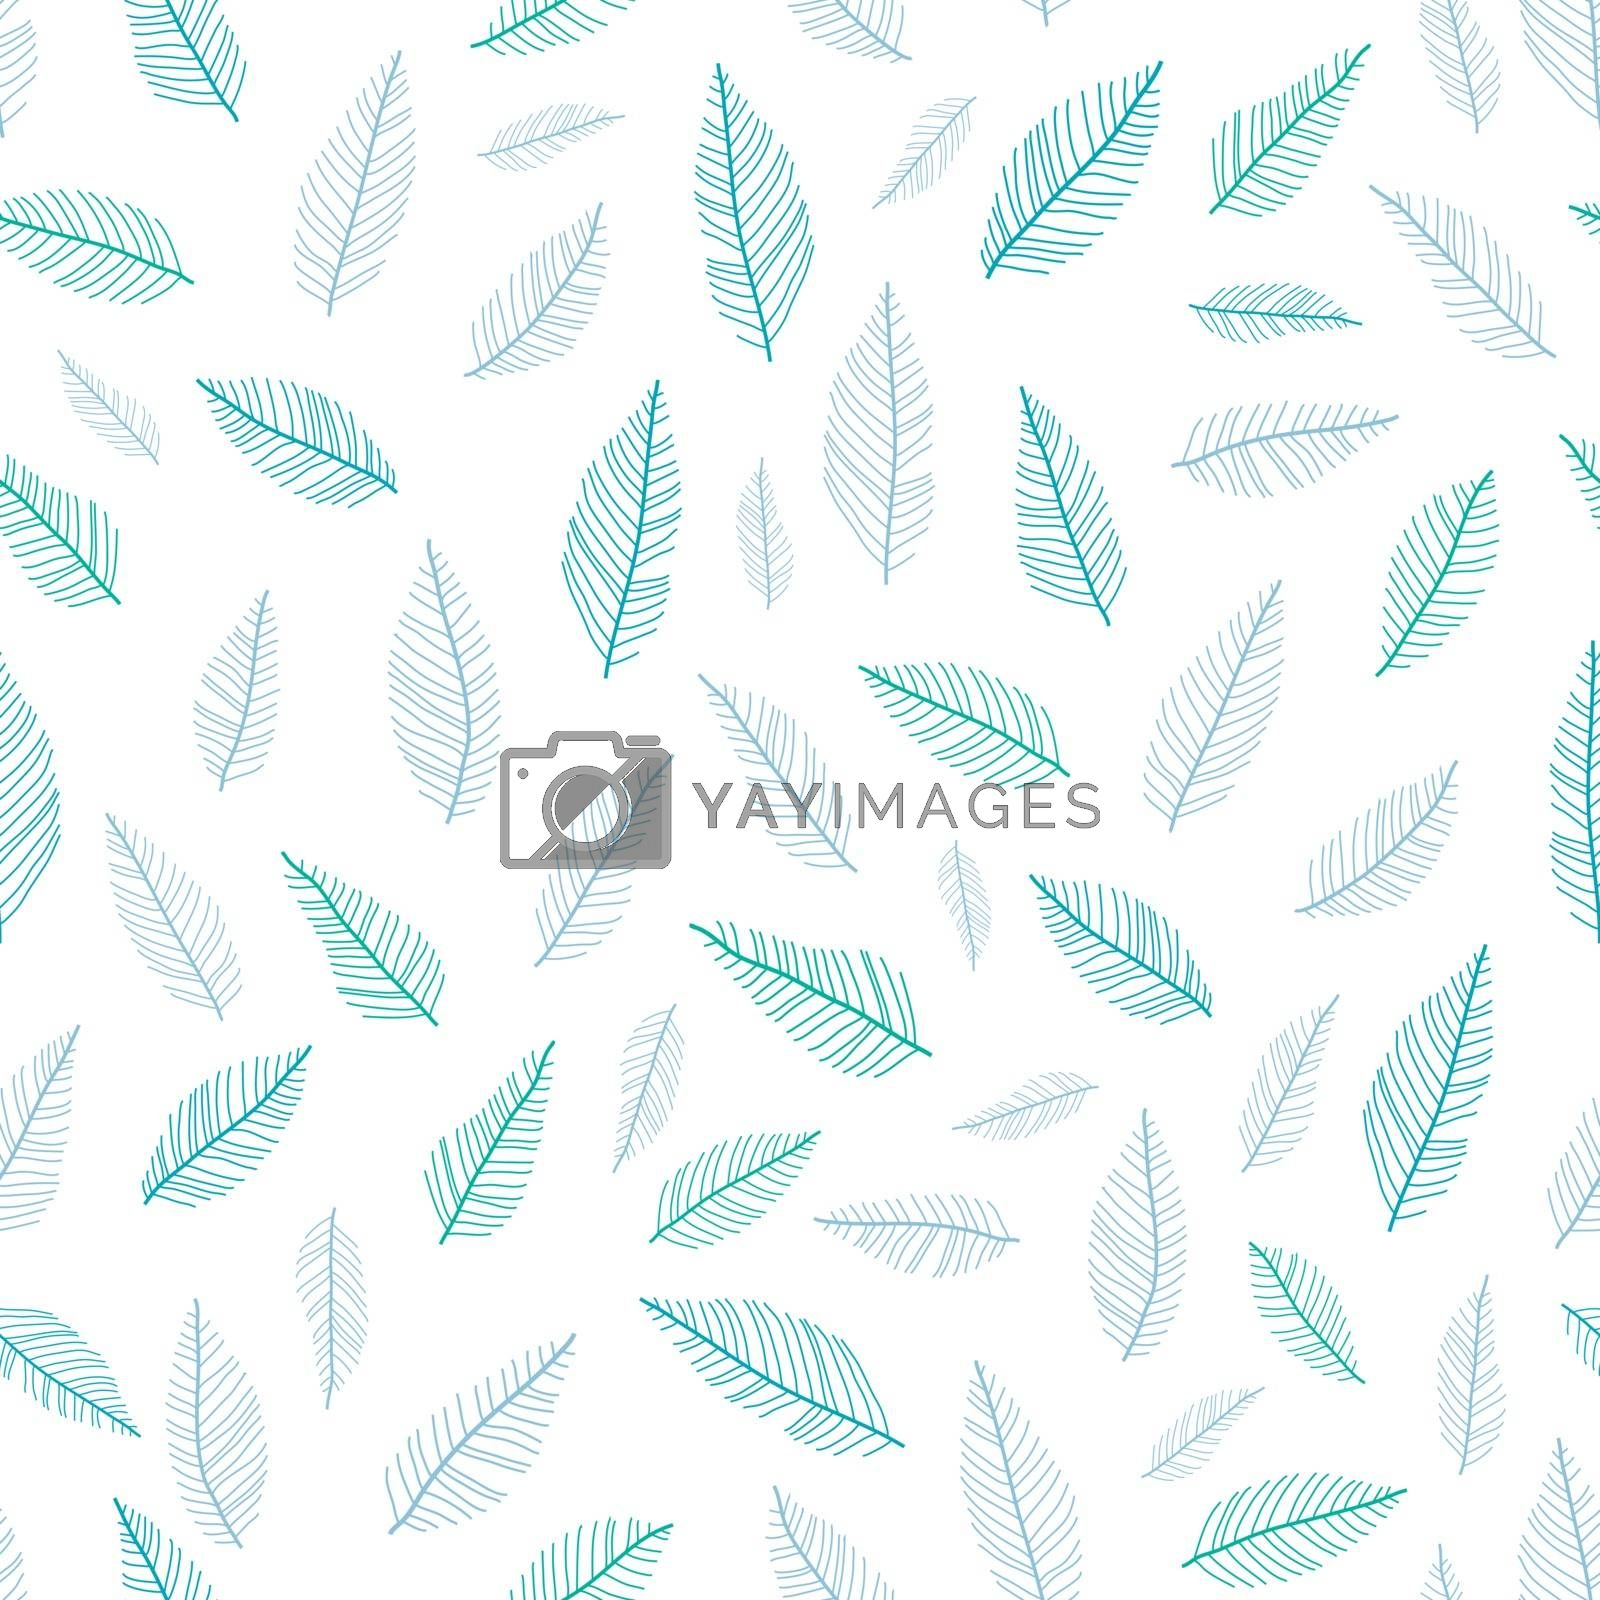 Vectgor blue green feathers pastel seamless pattern background graphic design